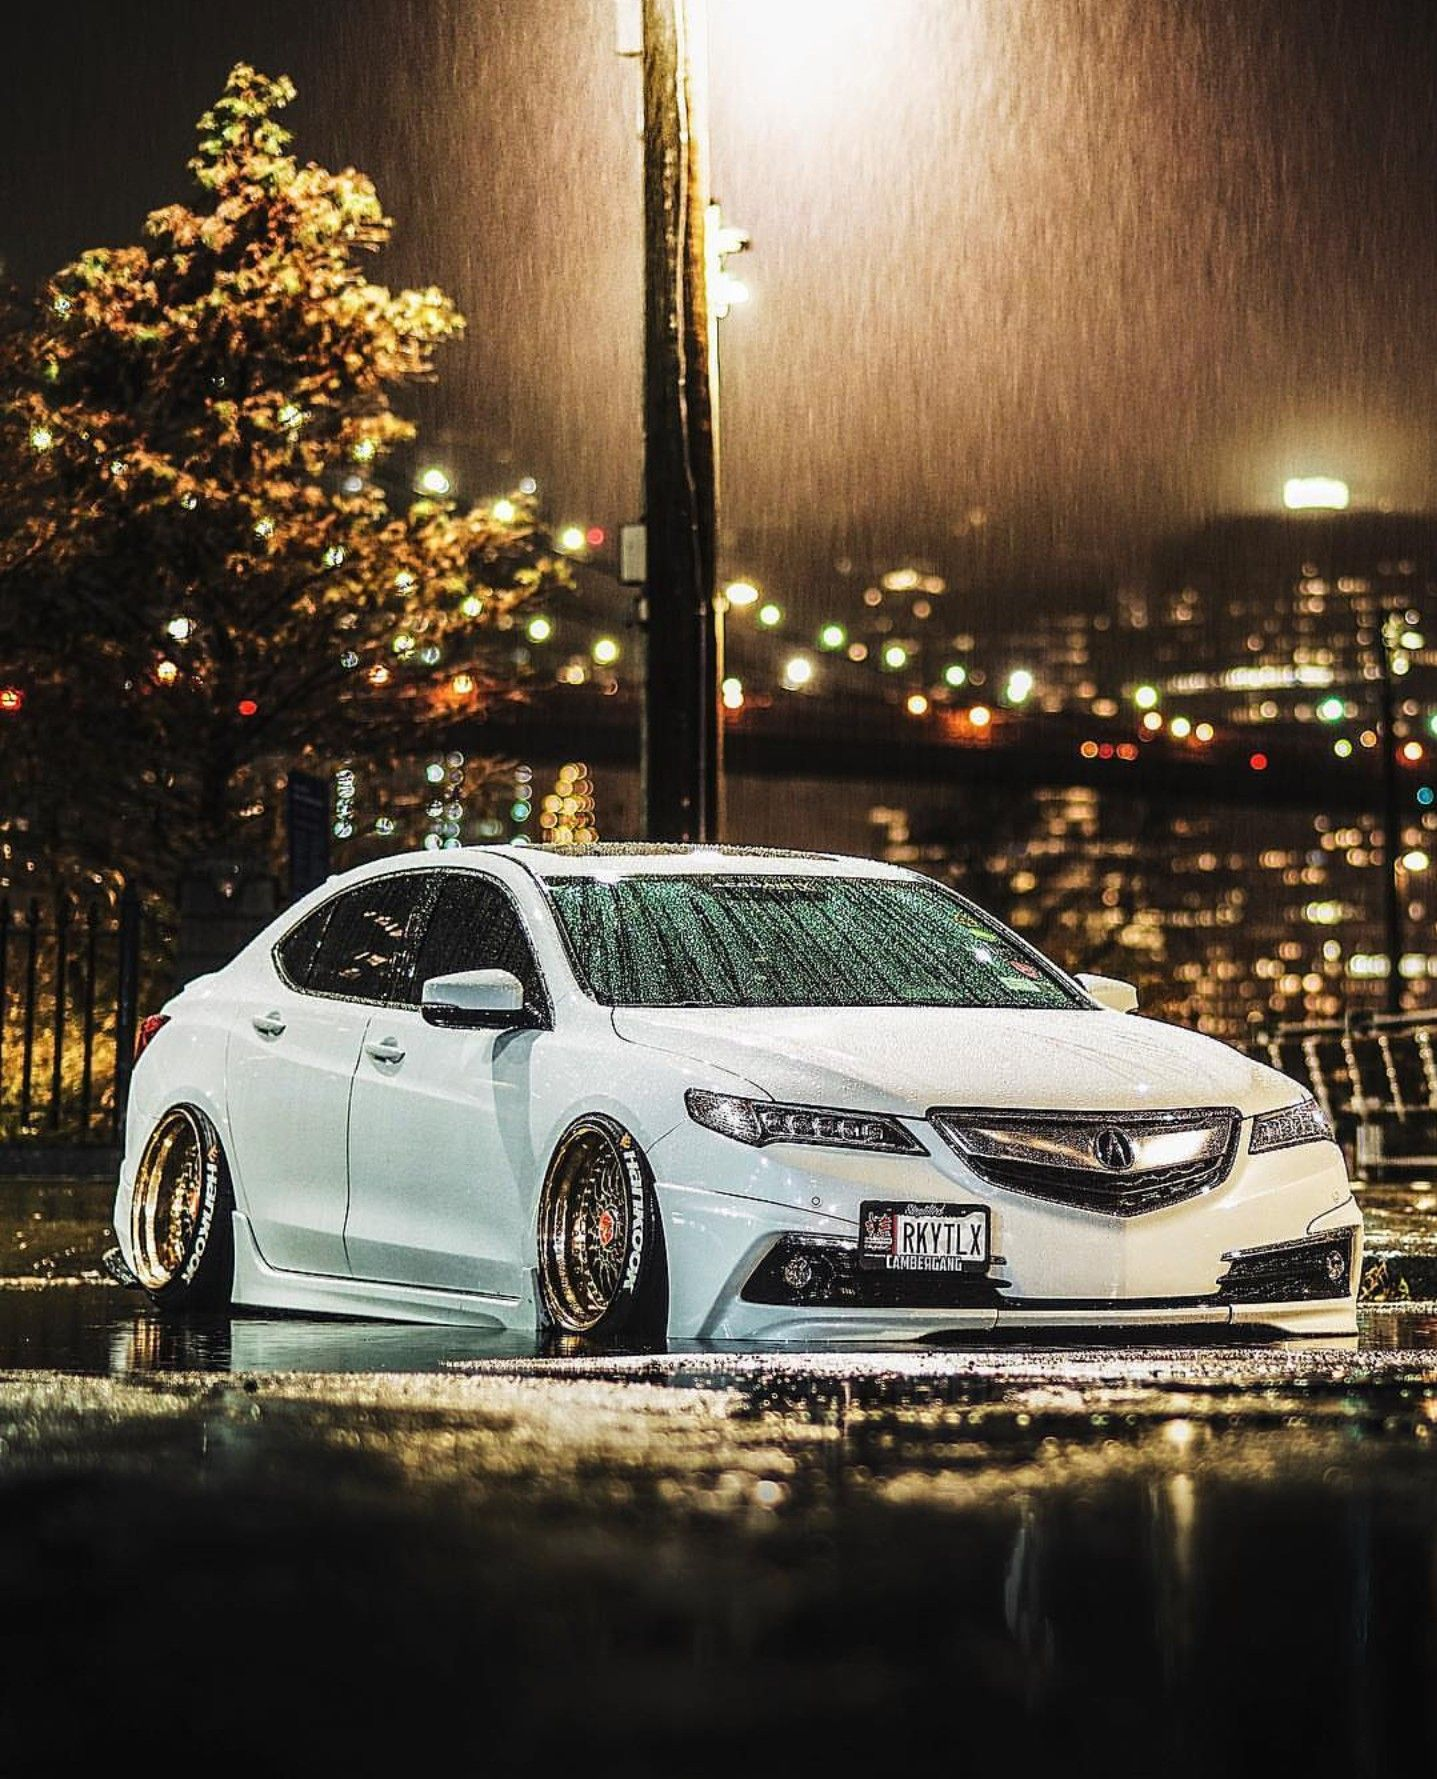 Pin By Billd90 On Acura (With Images)